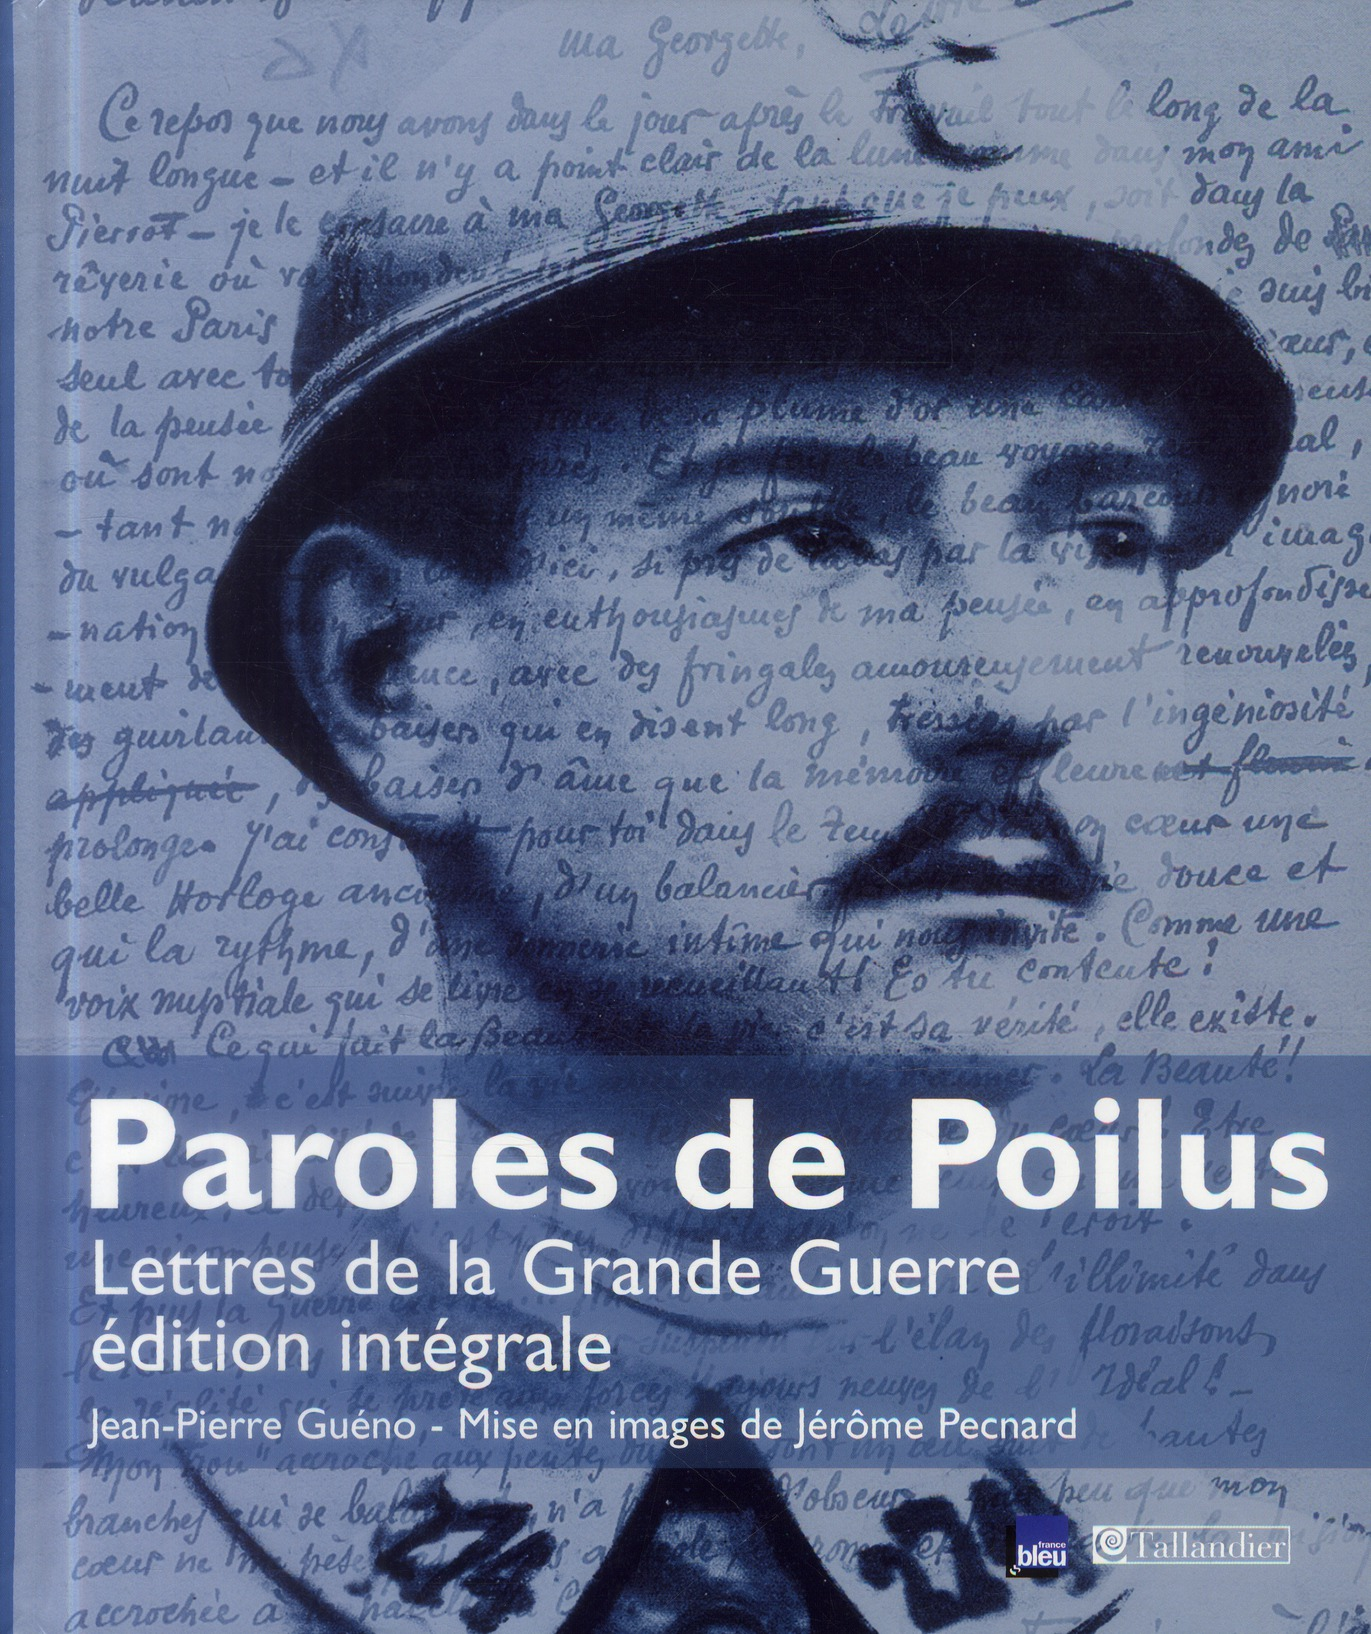 PAROLES DE POILUS LETTRES DE LA GRANDE GUERRE EDITION INTEGRALE